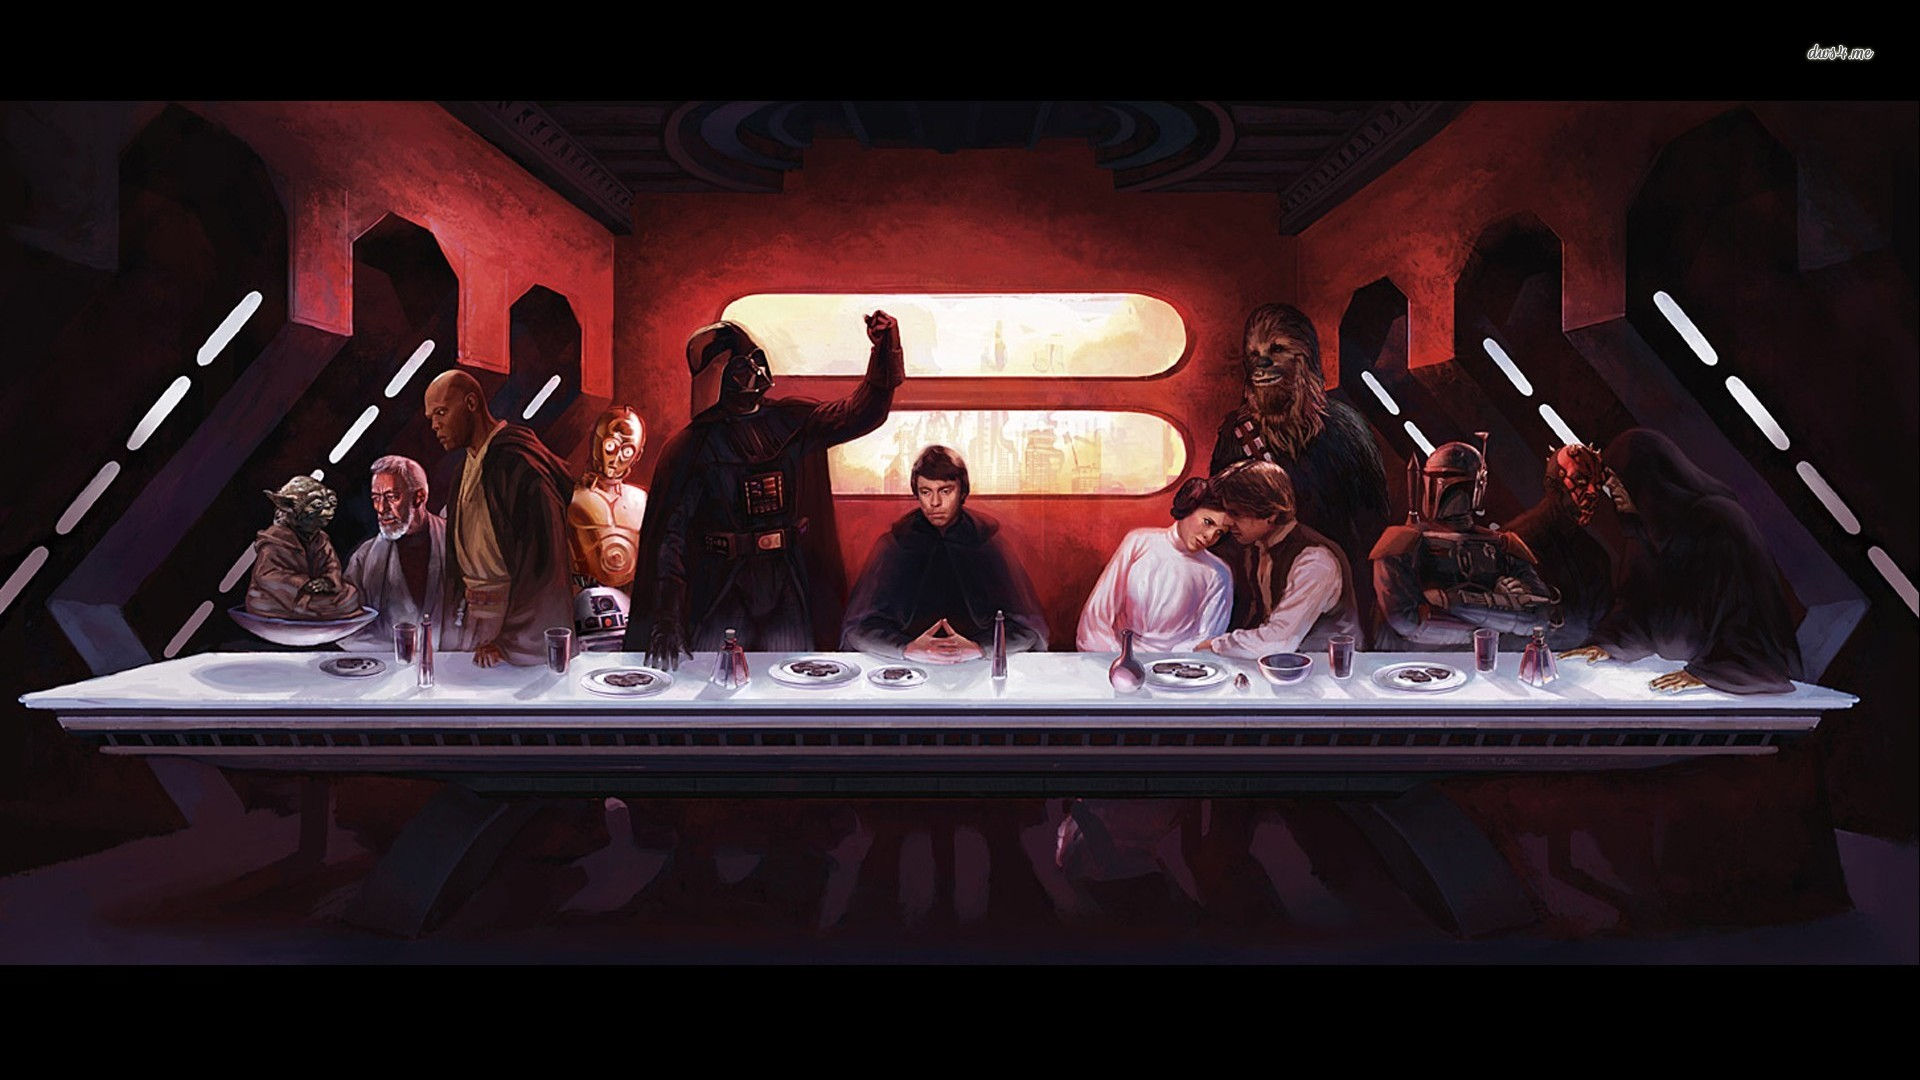 Star Wars Last Supper wallpaper   Artistic wallpapers   14701 1920x1080